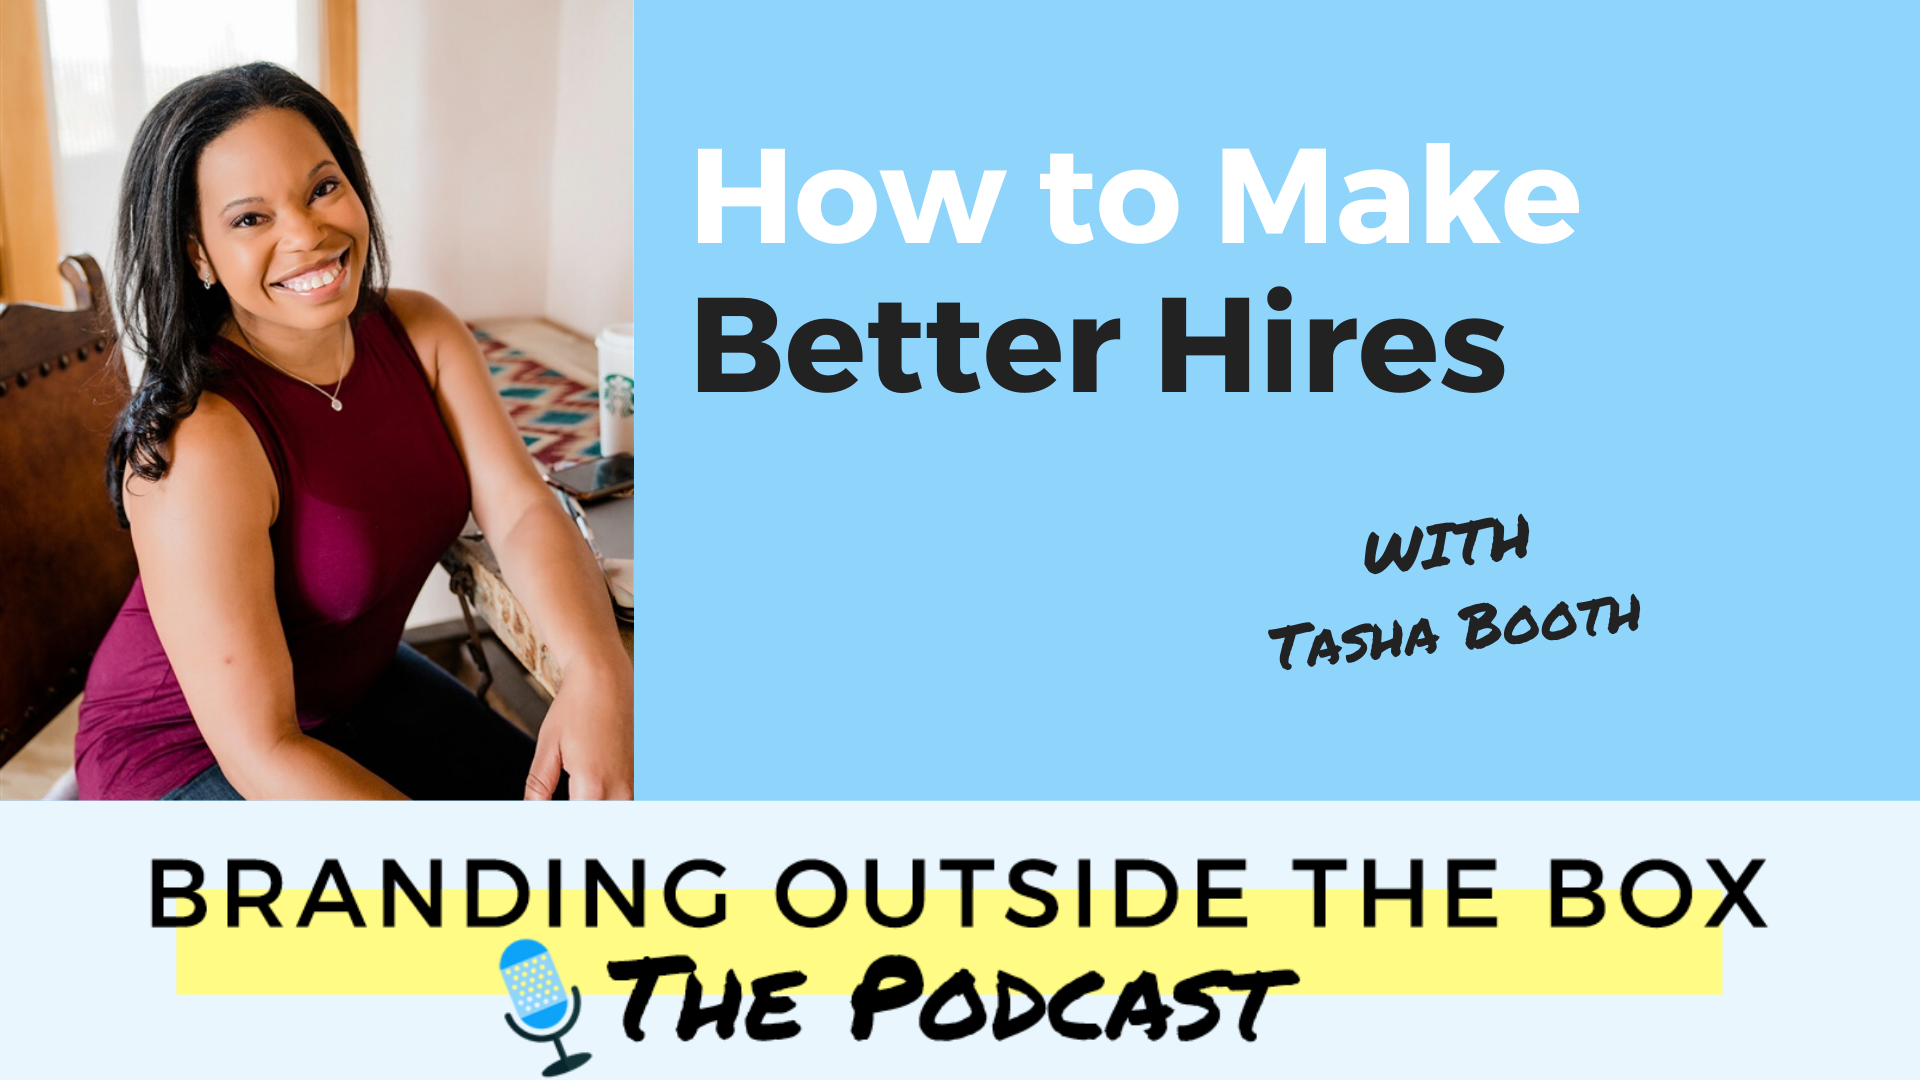 How to Make Better Hires